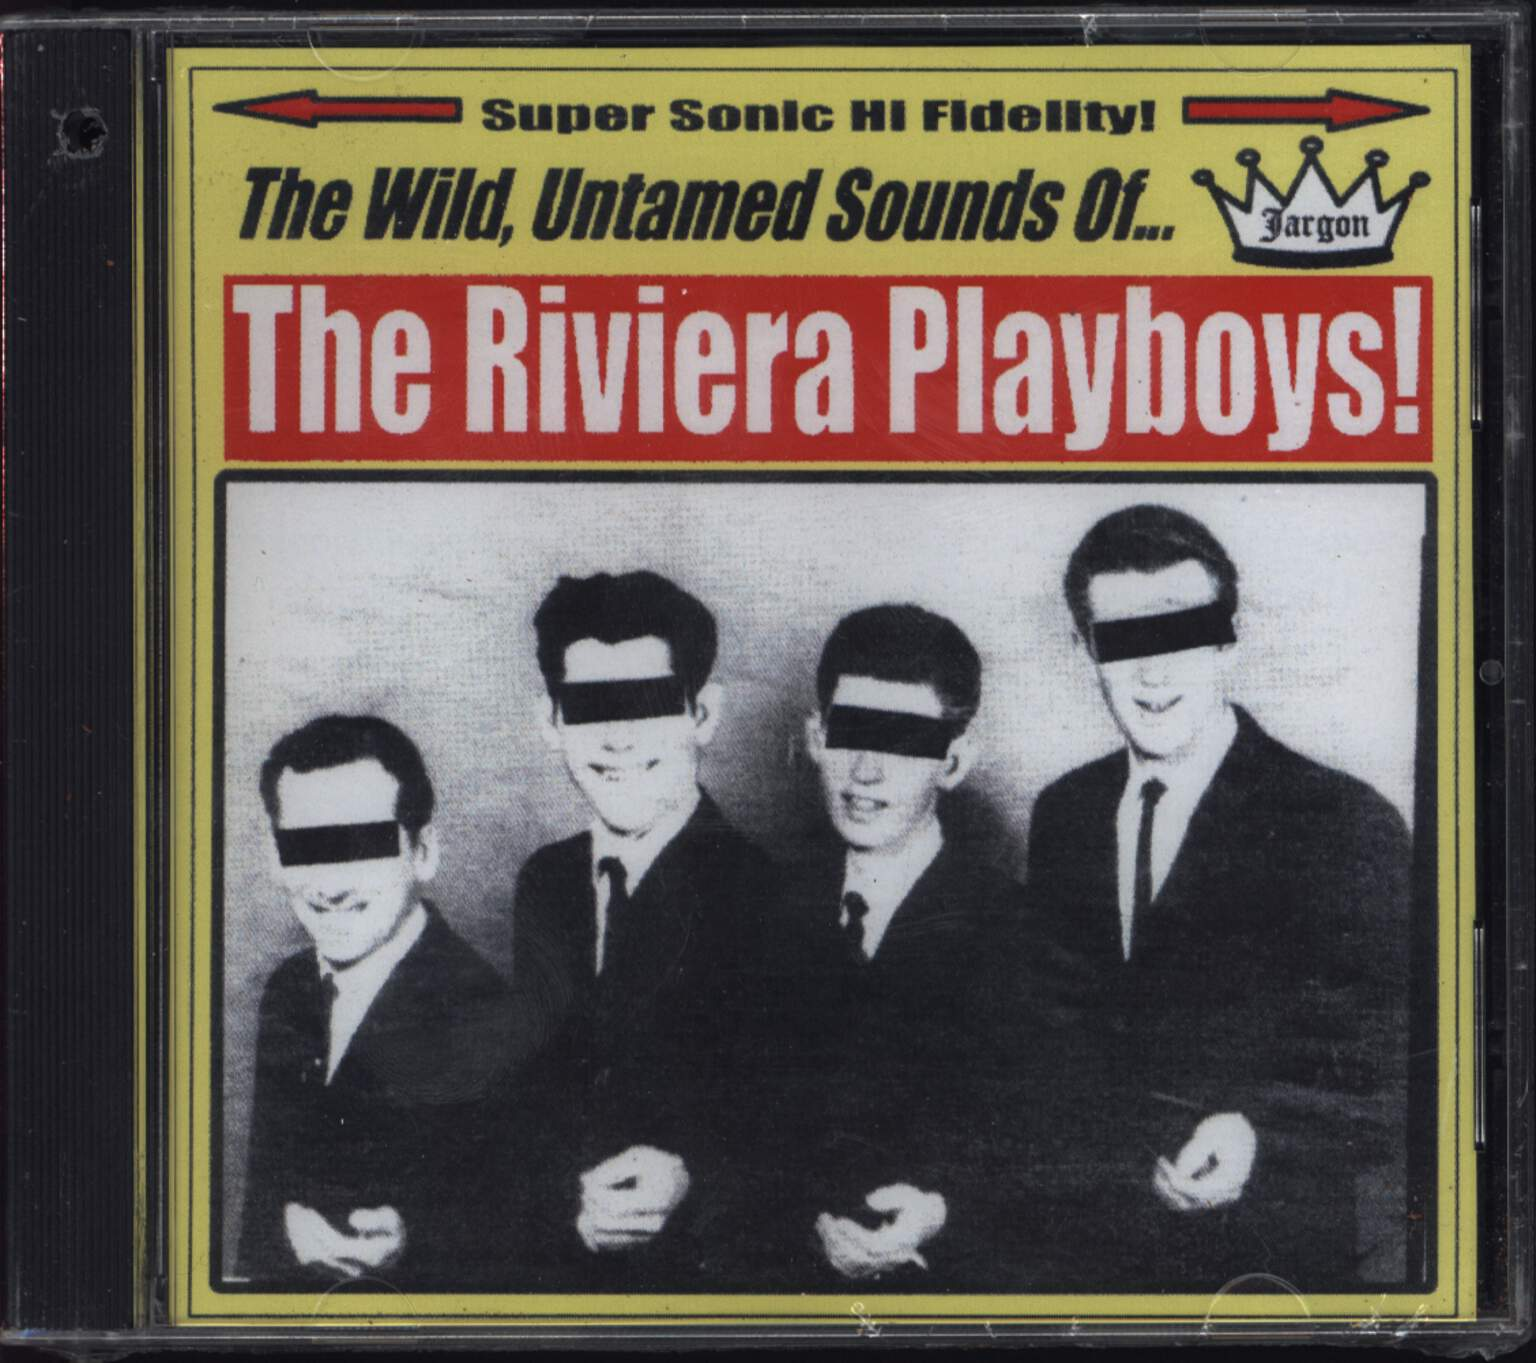 The Riviera Playboys: The Wild, Untamed Sounds Of... The Riviera Playboys, 1×CD